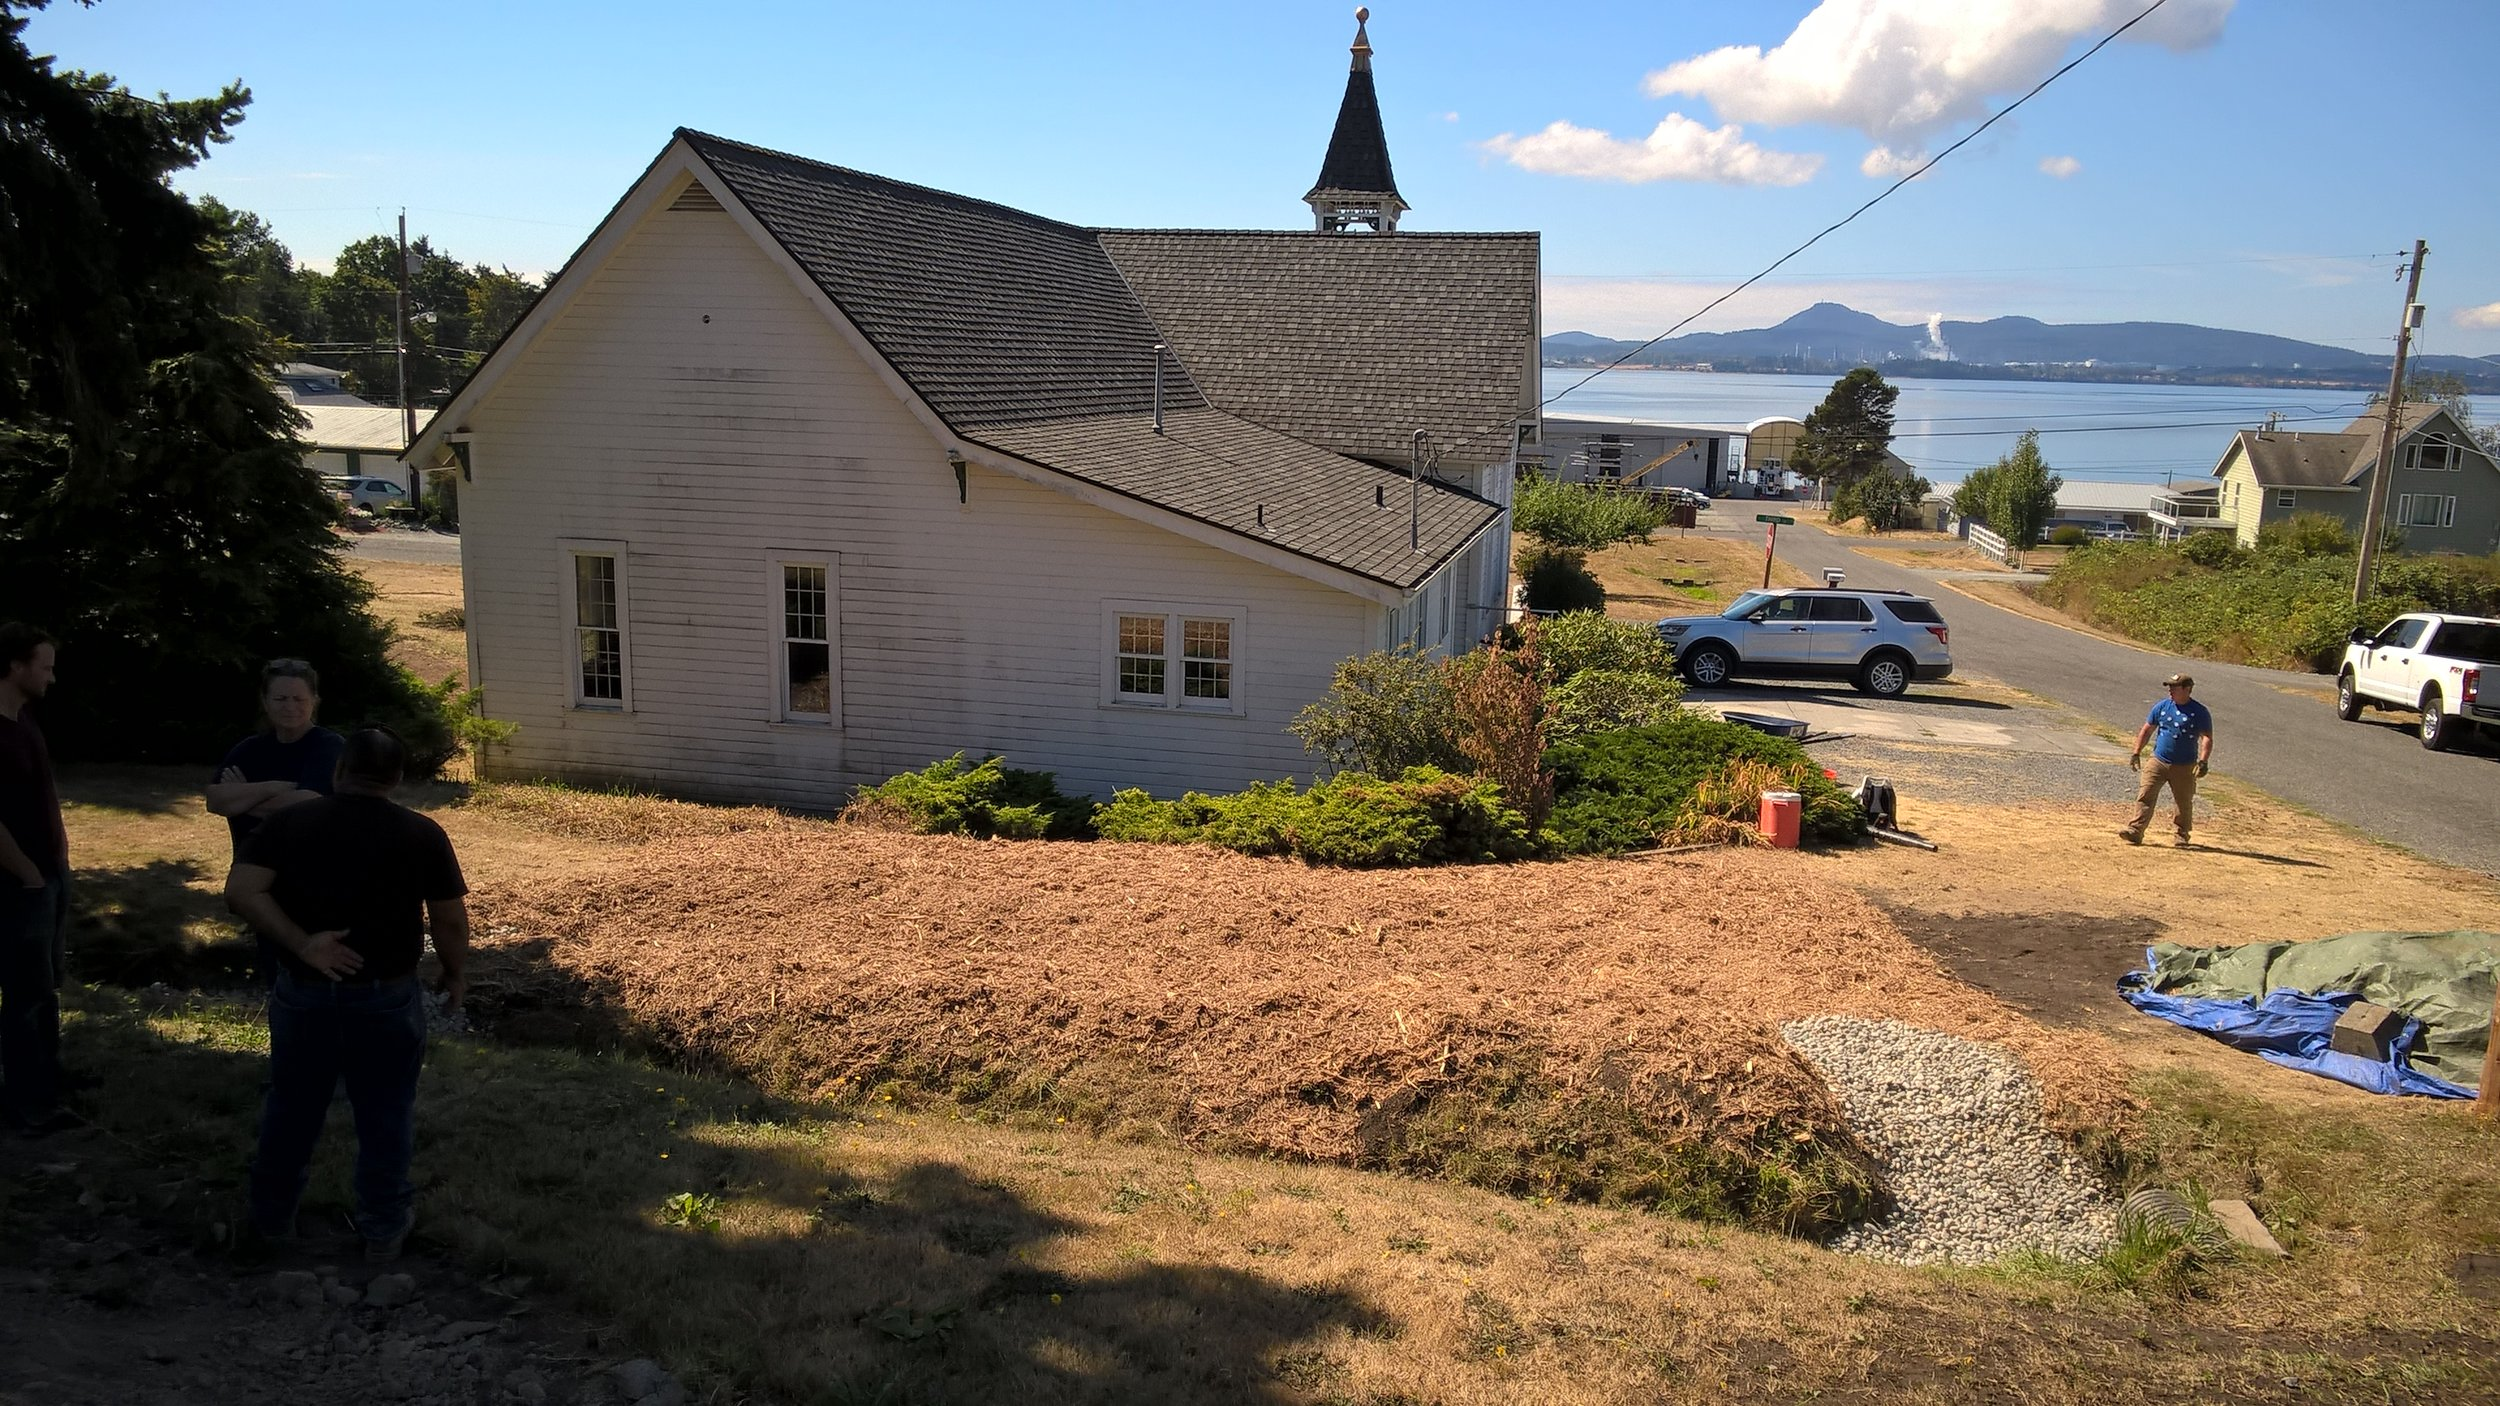 The fully prepped and ready for plants rain garden with padilla bay in the background